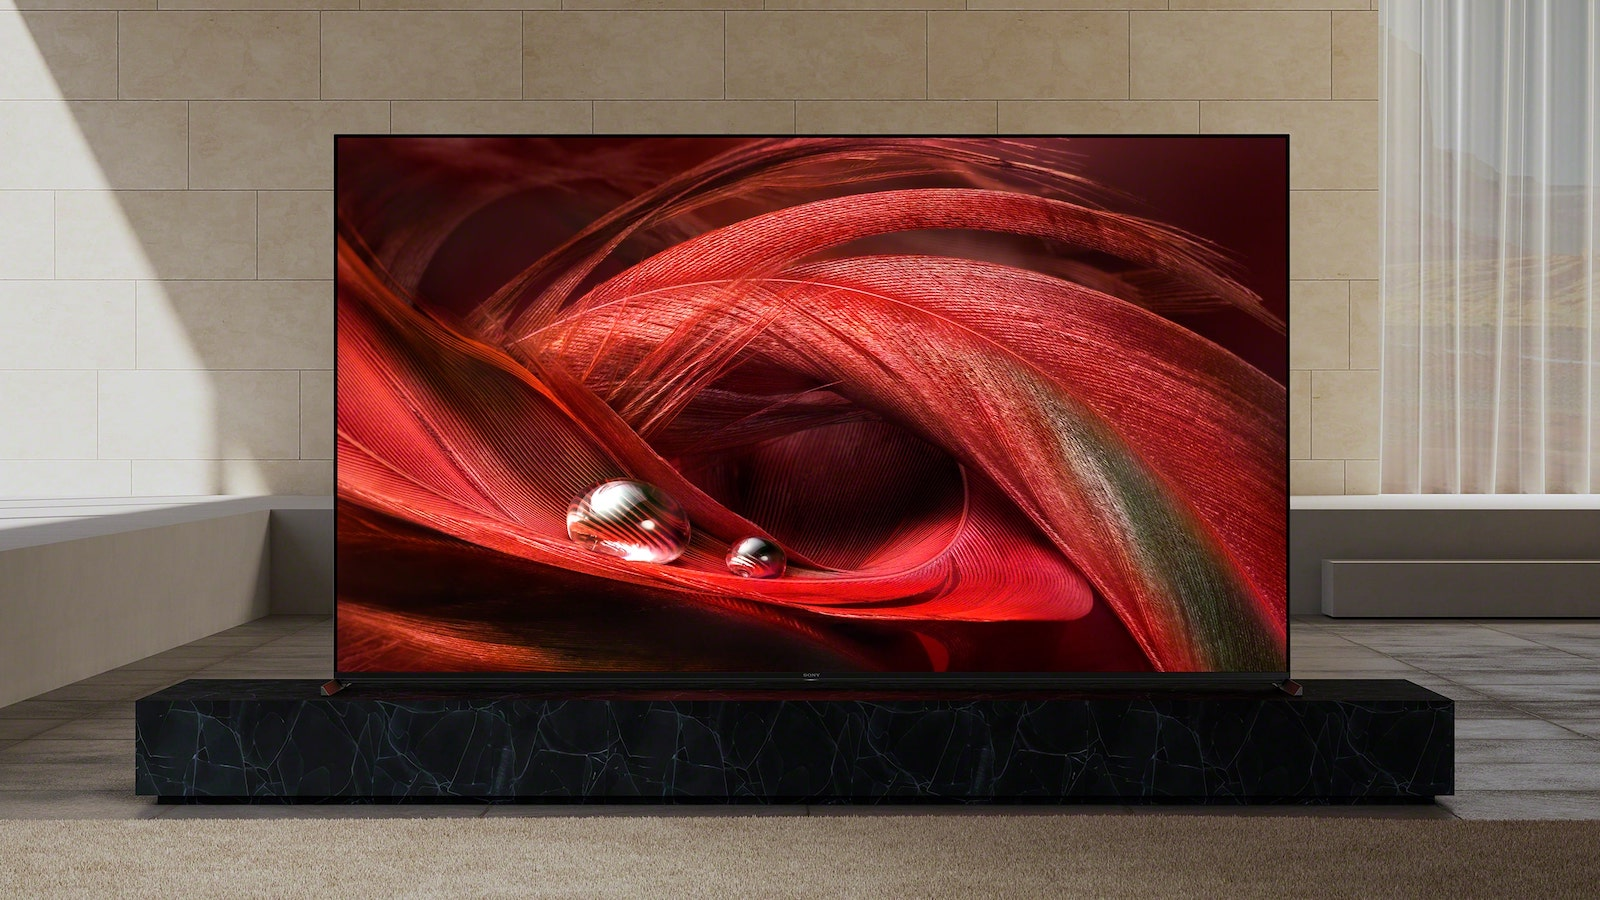 Sony BRAVIA XR X95J 4K LED TV boasts a premium 4K HDR picture